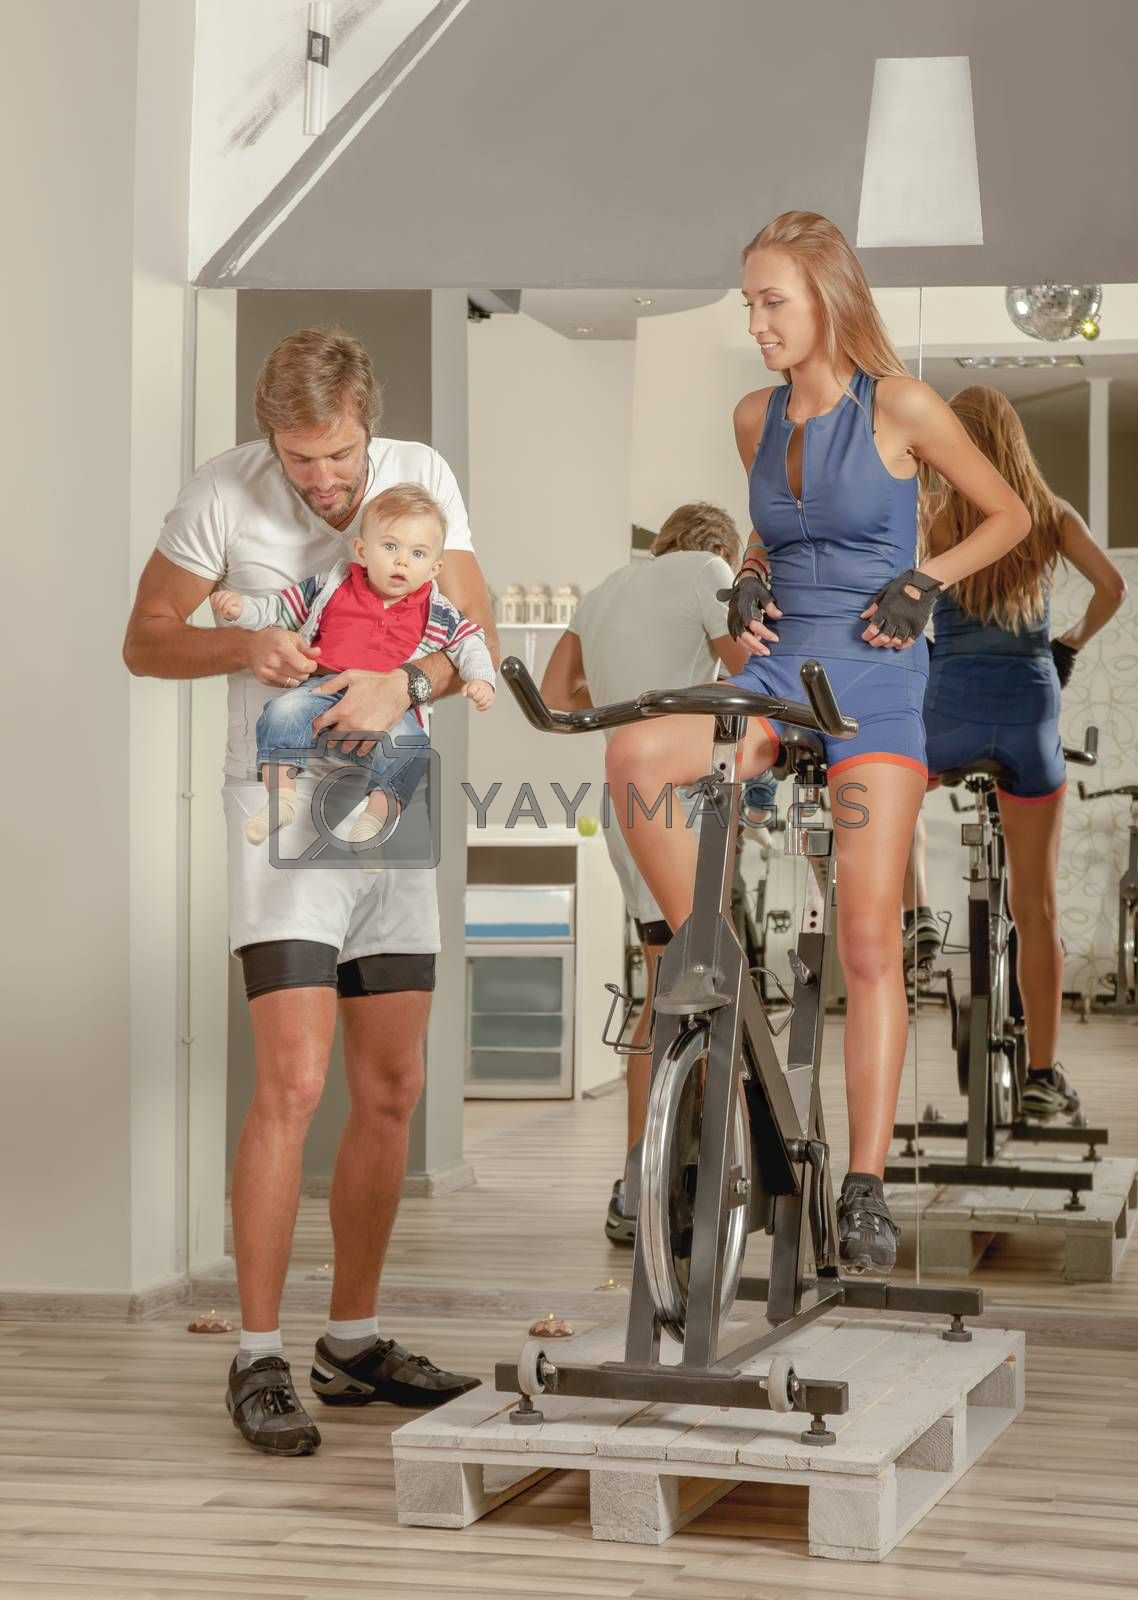 Royalty free image of Family Jim baby Cycling by vilevi